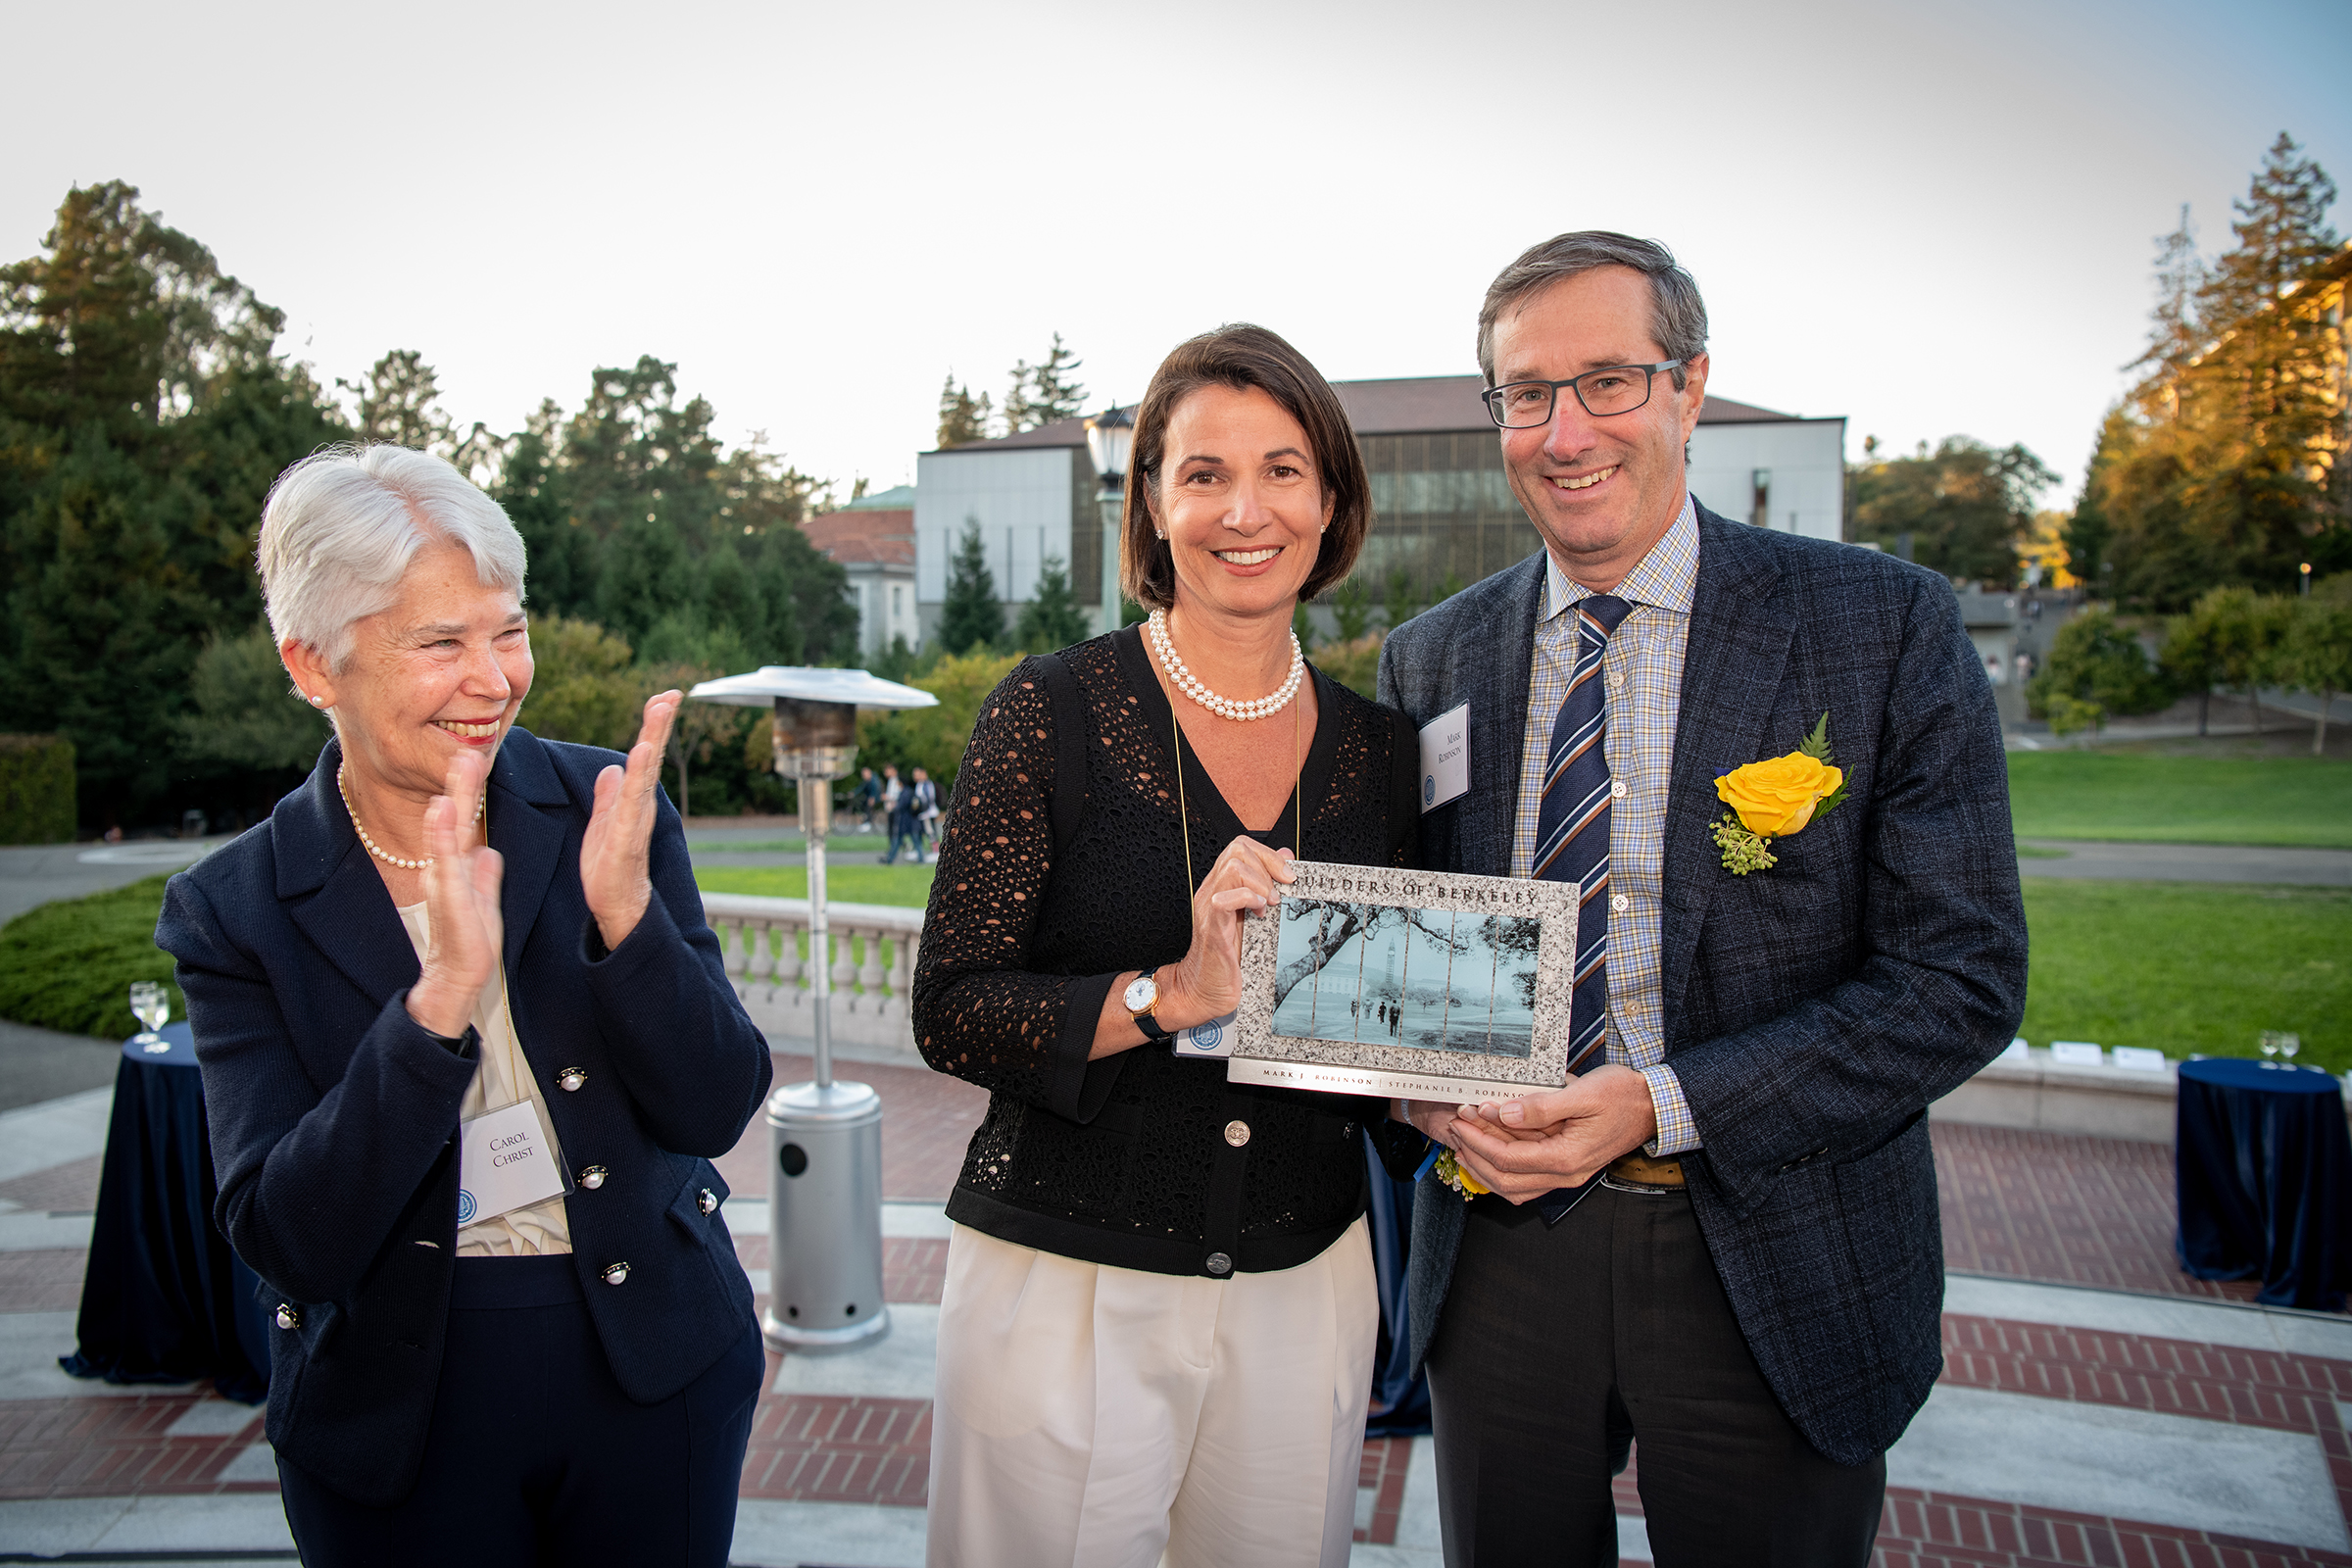 Photo of Chancellor Christ clapping and looking warmly upon Stephanie and Mark, who are holding a plaque.